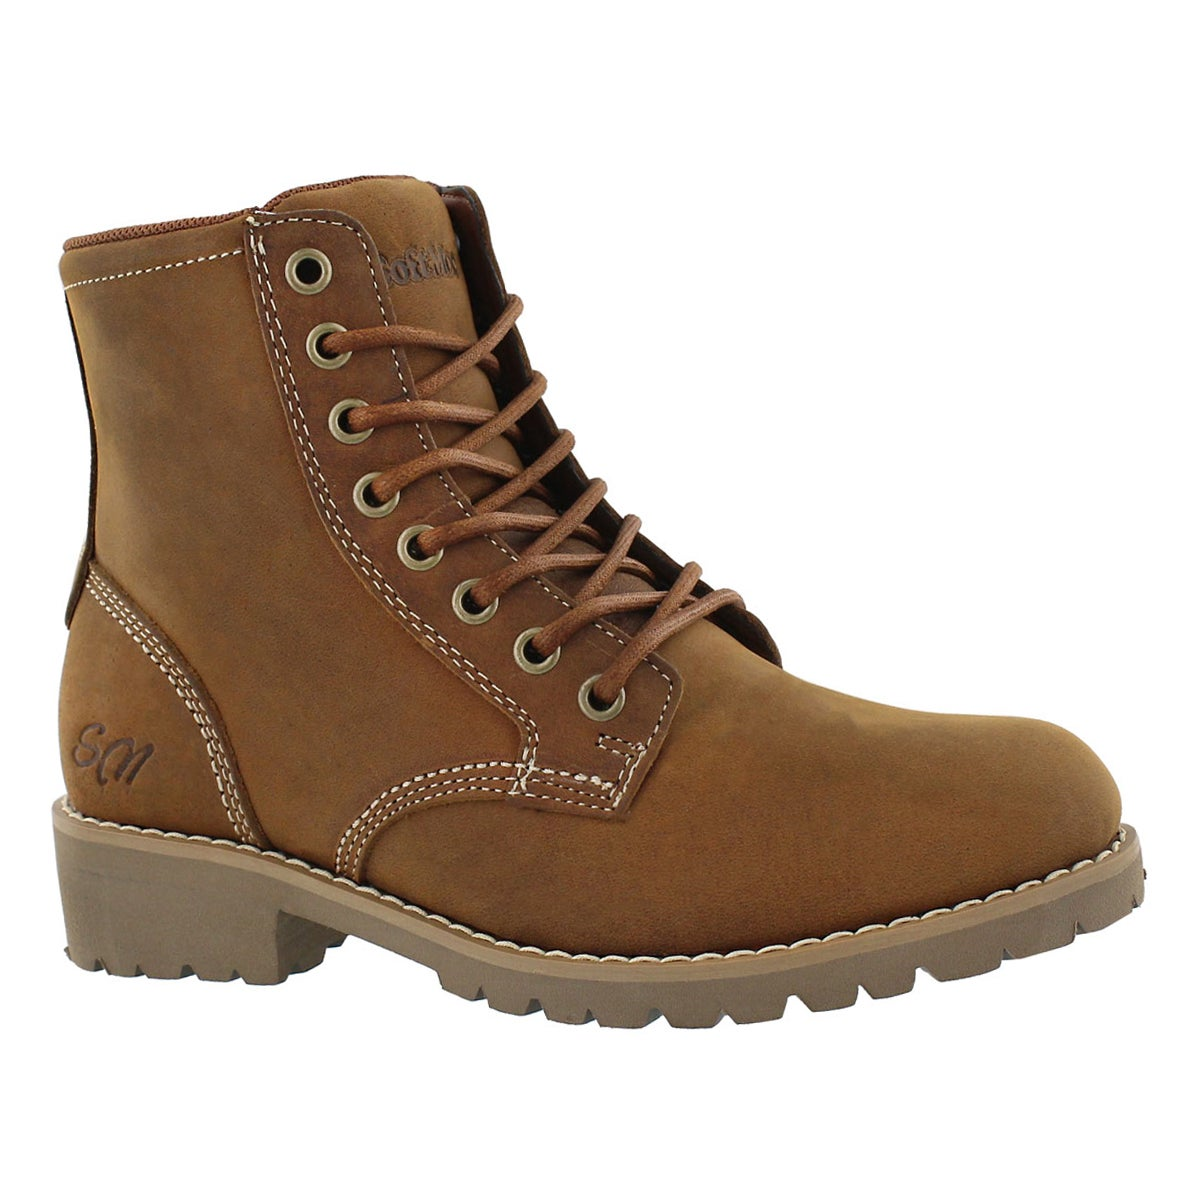 Women's DALISSE tan casual combat boots